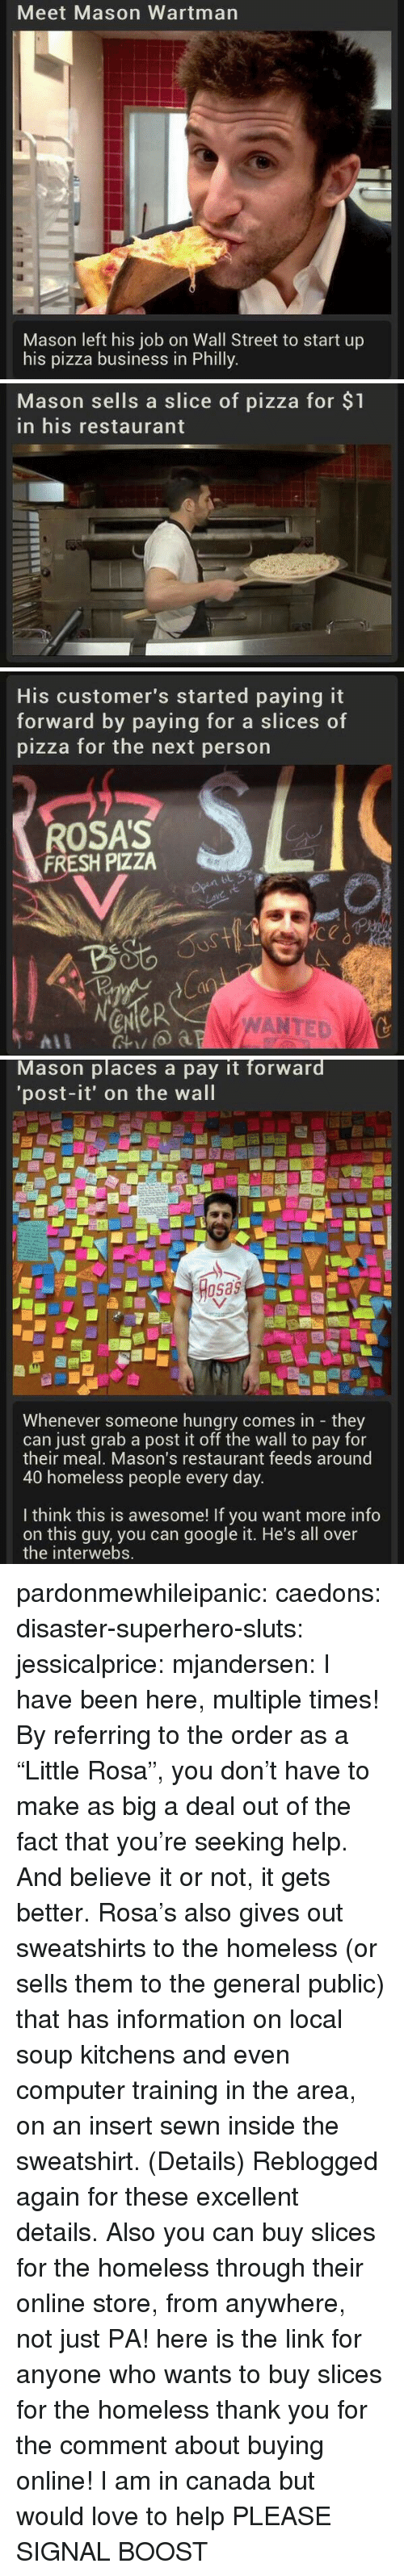 """Fresh, Google, and Homeless: Meet Mason Wartman  Mason left his job on Wall Street to start up  his pizza business in Philly   Mason sells a slice of pizza for $1  in his restaurant   His customer's started paying it  forward by paying for a slice  pizza for the next person  s of  ROSA'S  FRESH PIZZA  4o  a0  eNeR  WANTED   Mason places a pay it forward  'post-it' on the wall  osas  Whenever someone hungry comes in they  can just grab a post it off the wall to pay for  their meal, Mason's restaurant feeds around  40 homeless people every day  I think this is awesome! If you want more info  on this guy, you can google it. He's all over  the interwebs. pardonmewhileipanic: caedons:  disaster-superhero-sluts:  jessicalprice:  mjandersen:  I have been here, multiple times!  By referring to the order as a """"Little Rosa"""", you don't have to make as big a deal out of the fact that you're seeking help. And believe it or not, it gets better. Rosa's also gives out sweatshirts to the homeless (or sells them to the general public) that has information on local soup kitchens and even computer training in the area, on an insert sewn inside the sweatshirt. (Details)  Reblogged again for these excellent details.  Also you can buy slices for the homeless through their online store, from anywhere, not just PA!  here is the link for anyone who wants to buy slices for the homeless  thank you for the comment about buying online! I am in canada but would love to help PLEASE SIGNAL BOOST"""